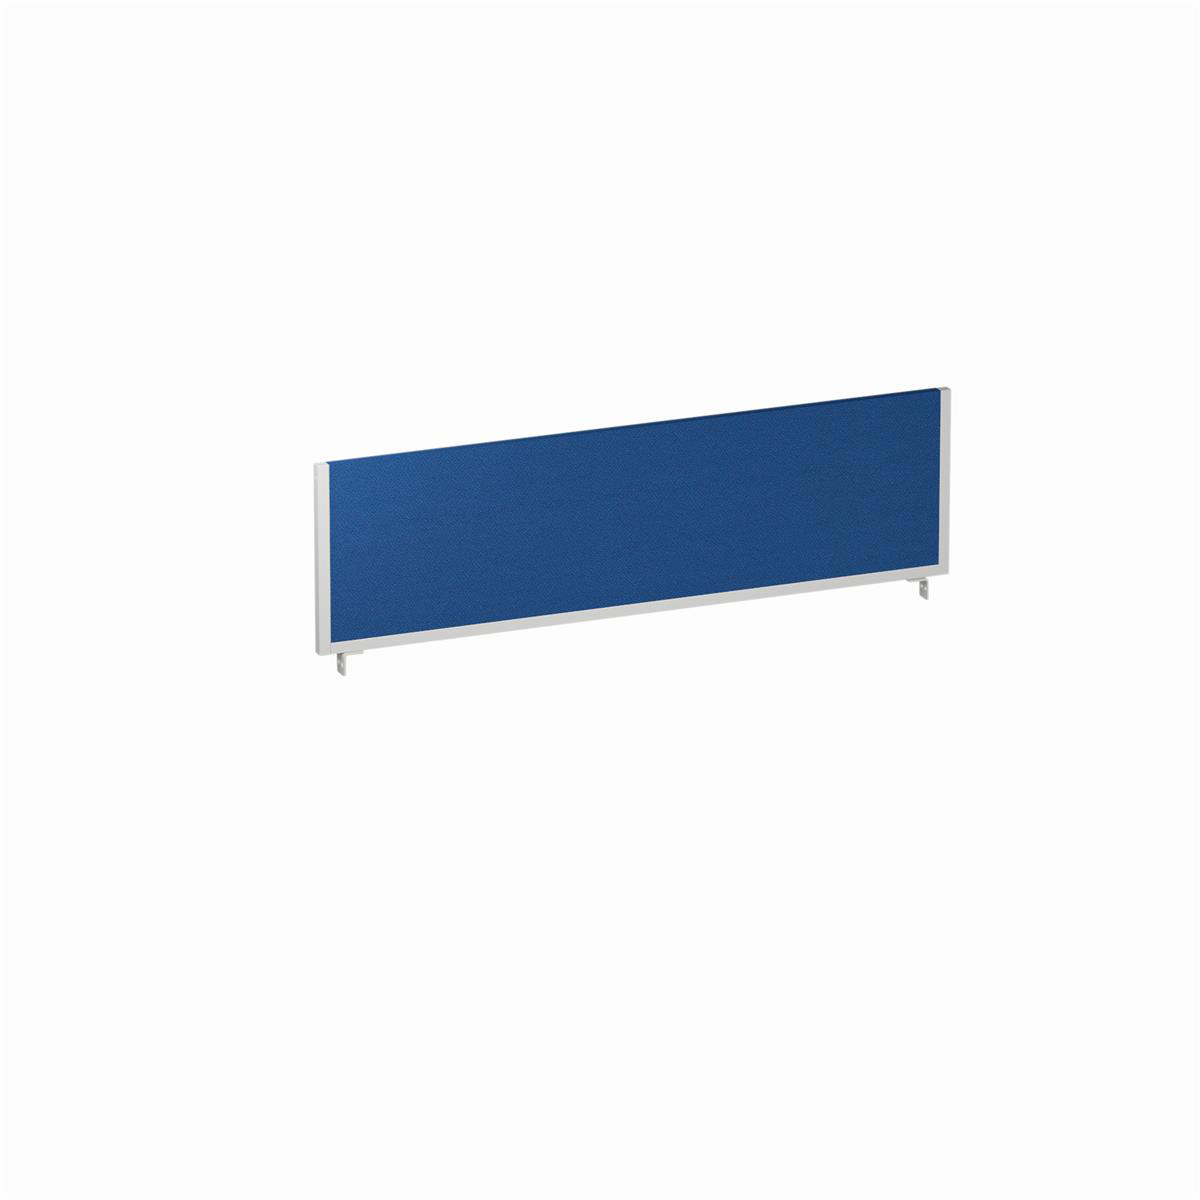 Trexus Desk Screen 1400mm Blue with Silver Frame